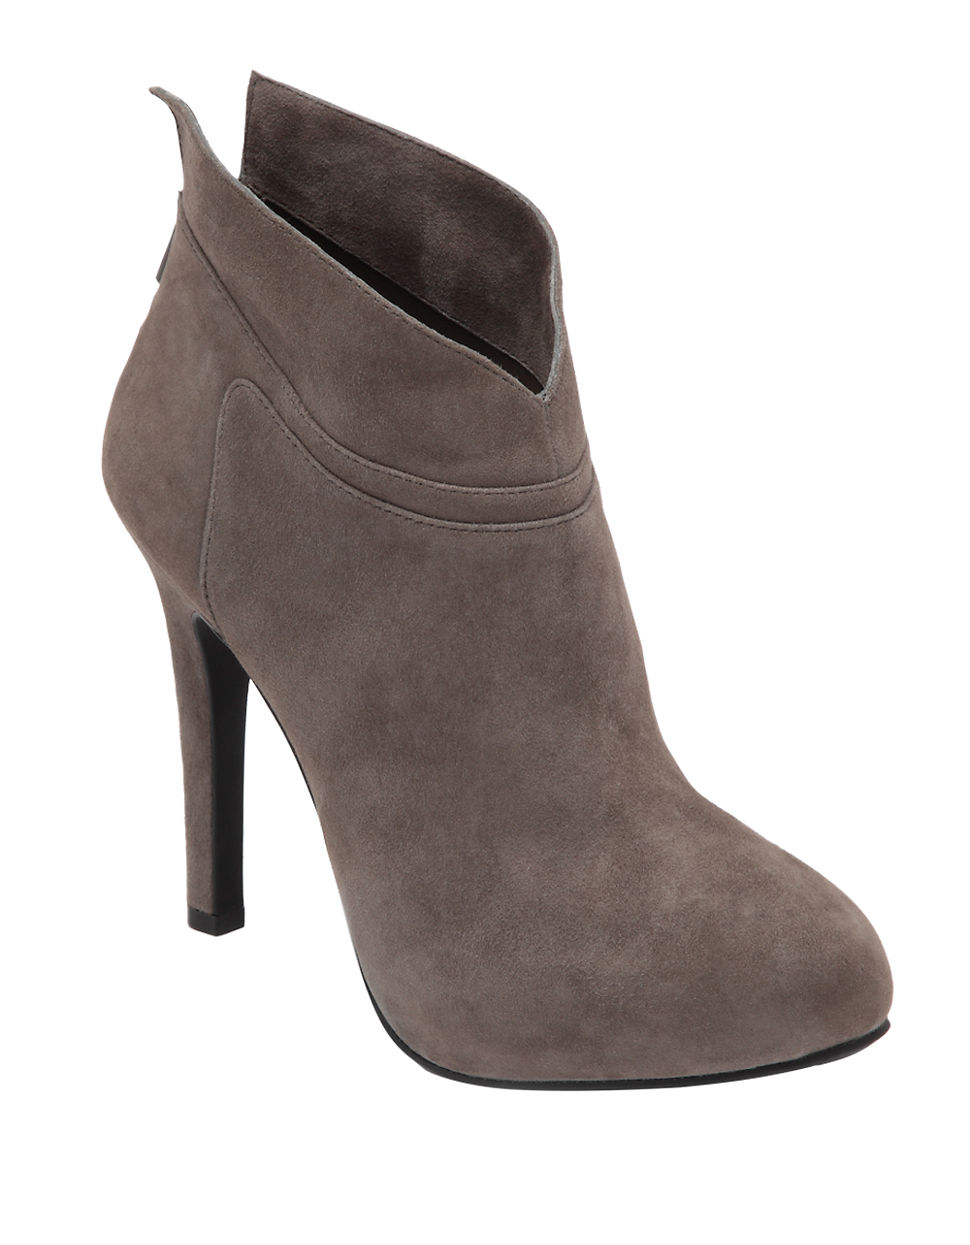 aggie leather high heel ankle boots in